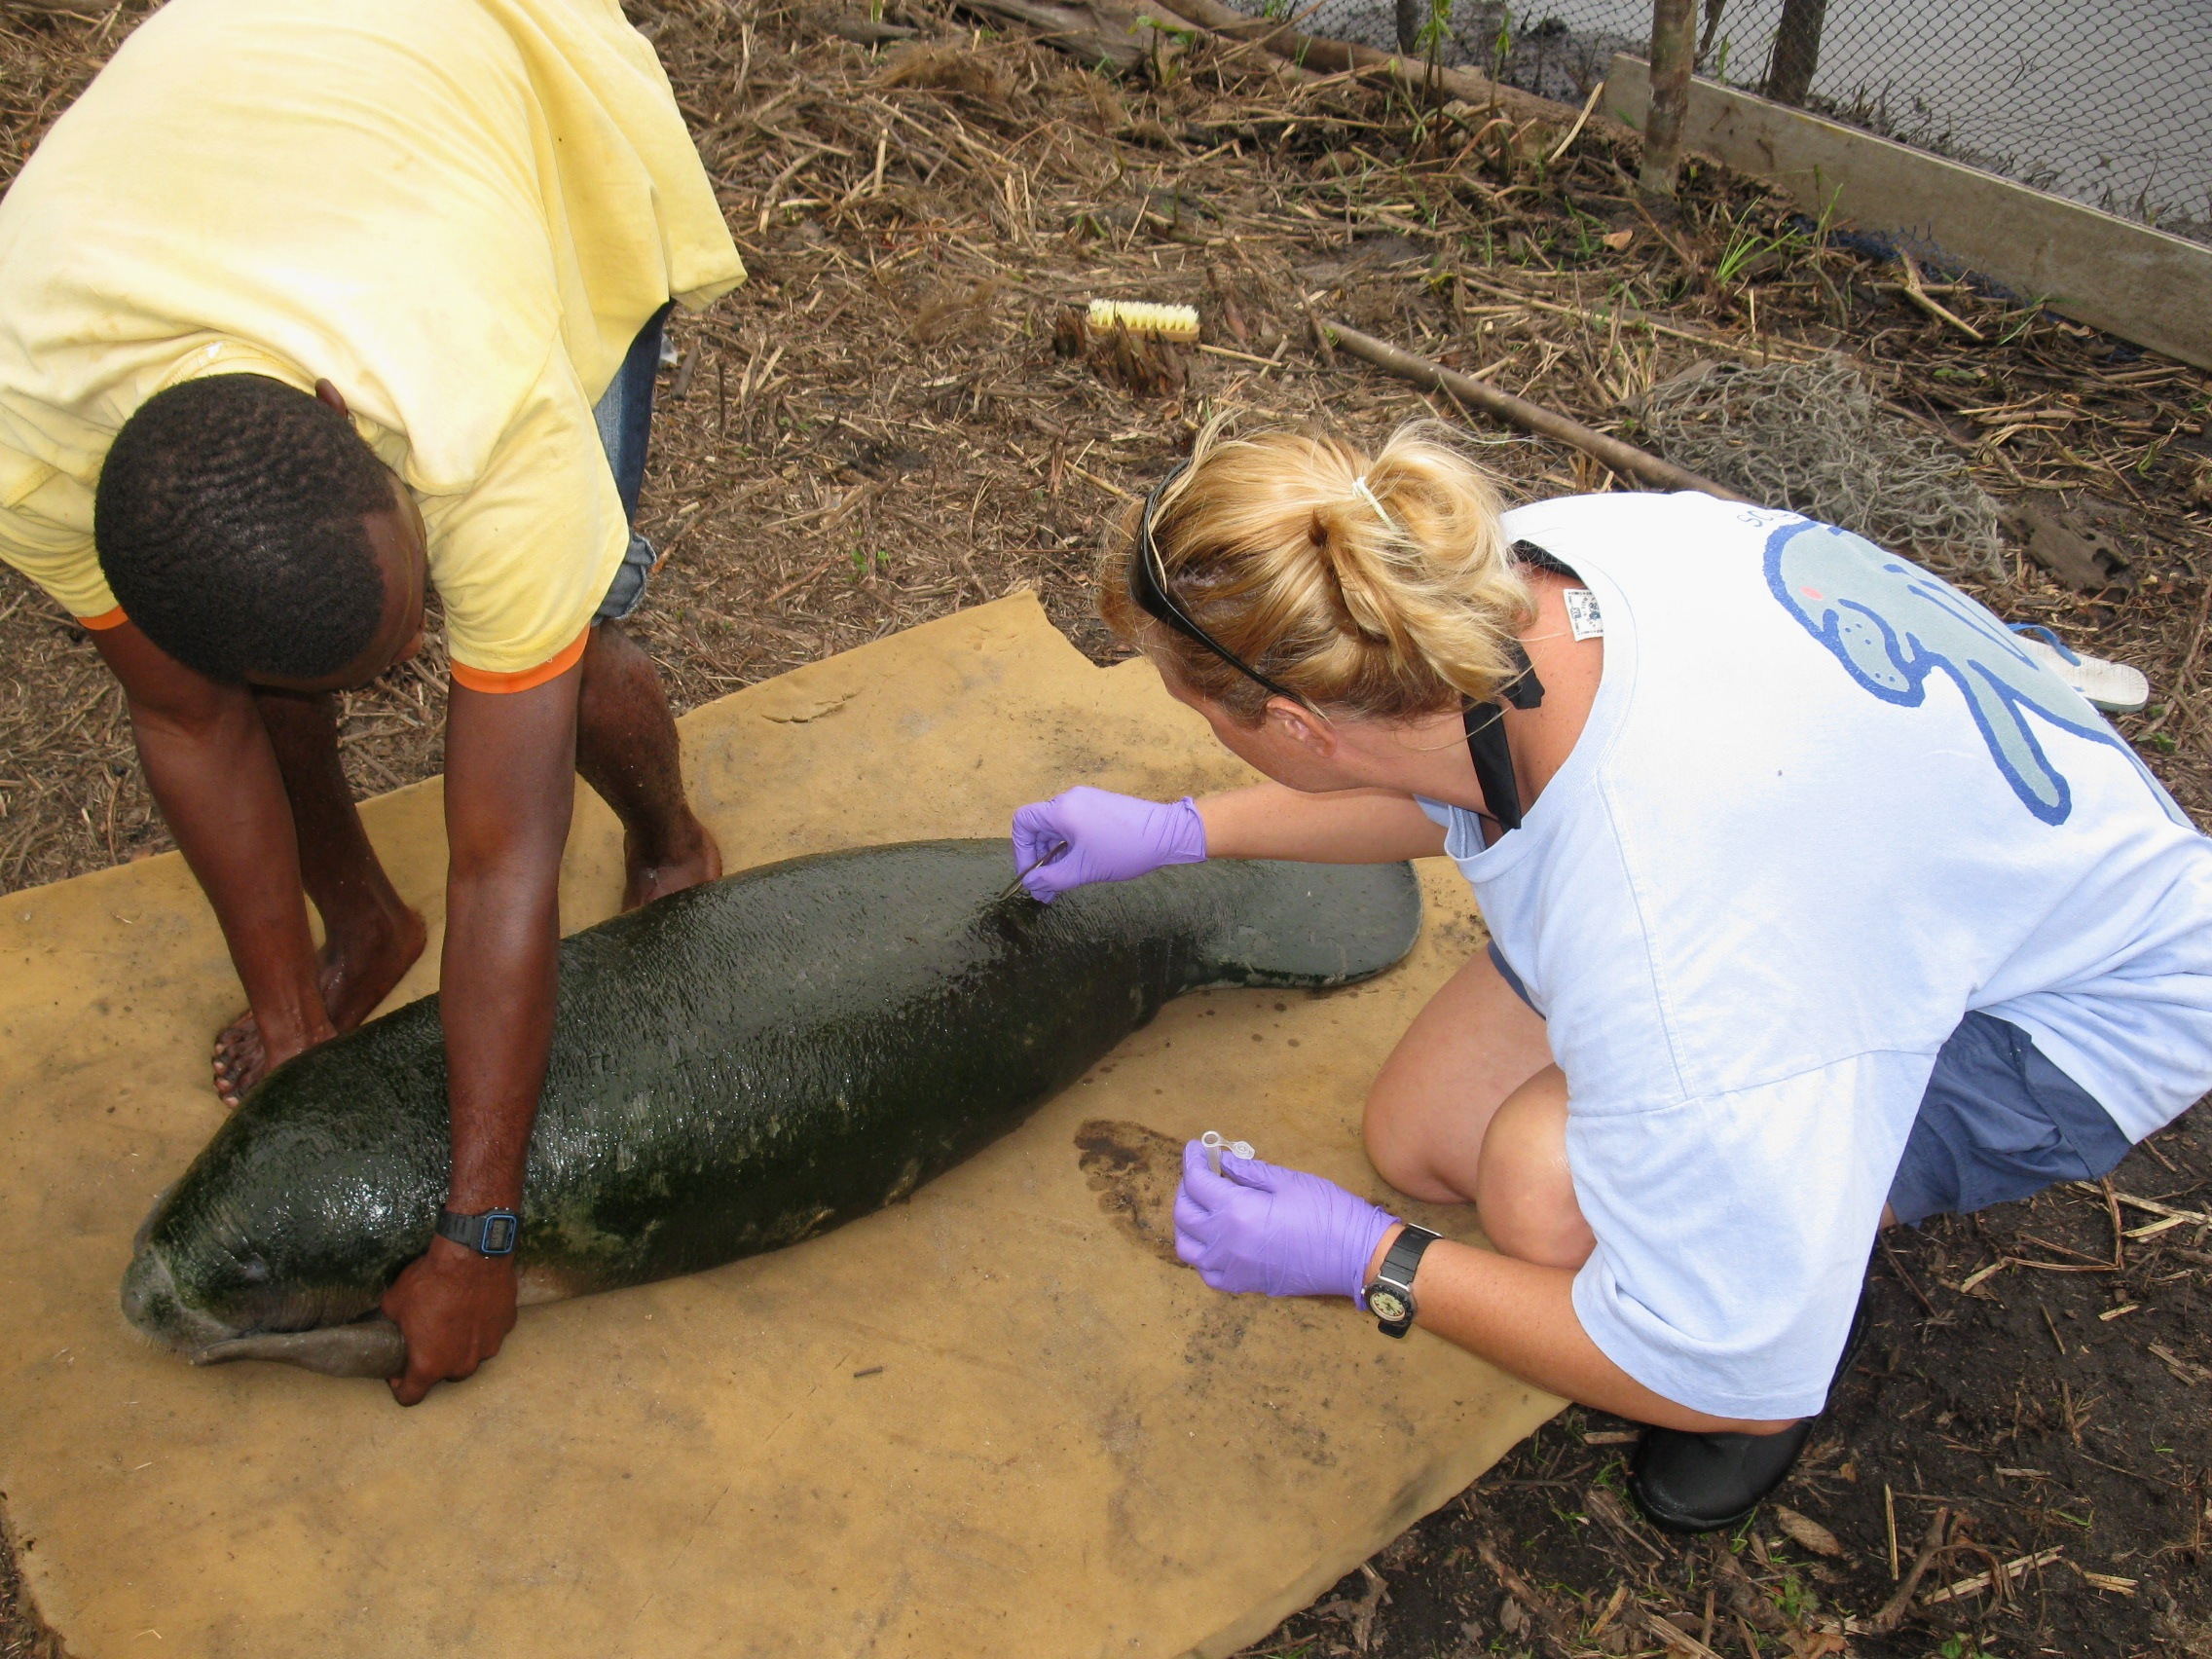 Dr. Keith Diagne (right) collects hairs from a captive manatee calf. The hairs are analyzed to determine diet.